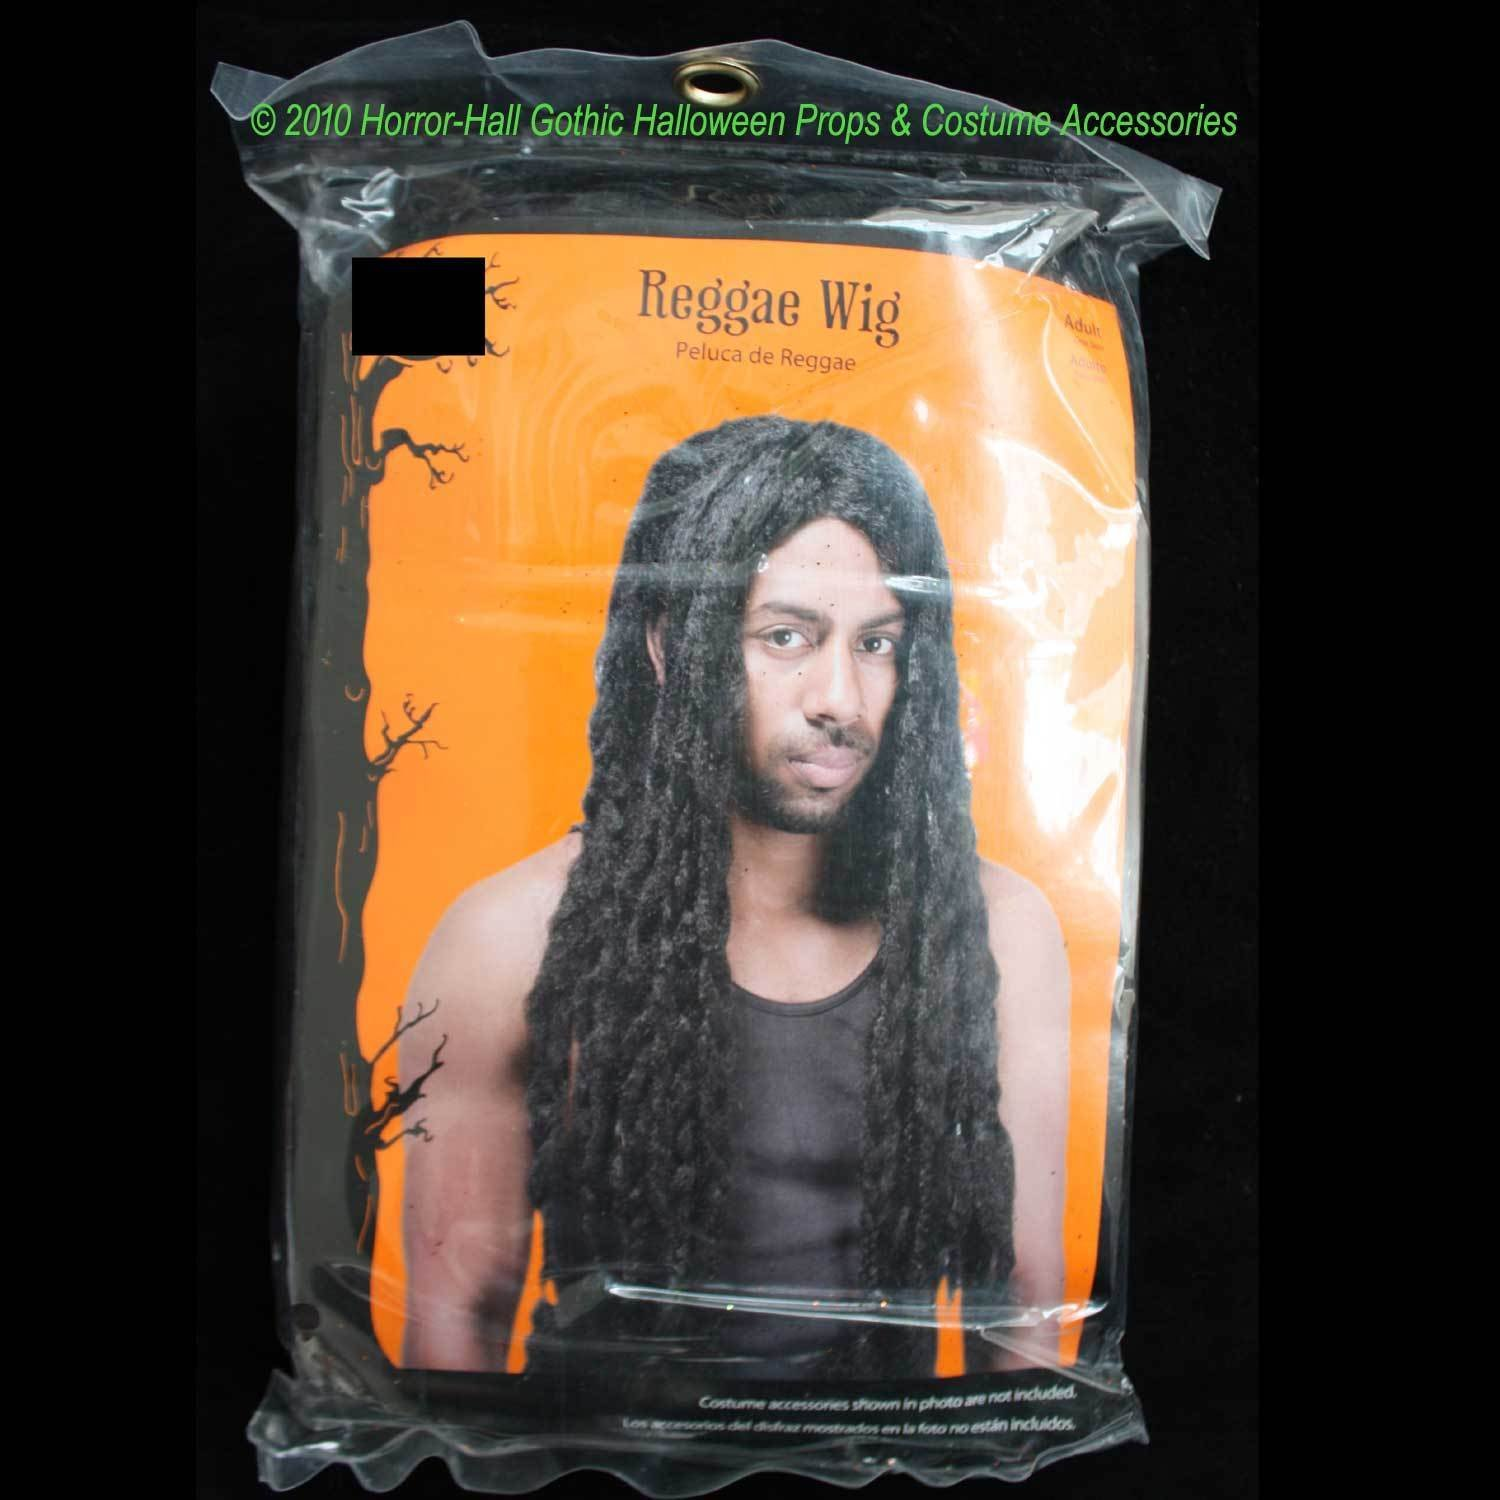 Amazon.com: LONG Dreadlocks Jamaican BLACK BRAID RASTA WIGUnisex Halloween Costume Accessory: Kitchen & Dining